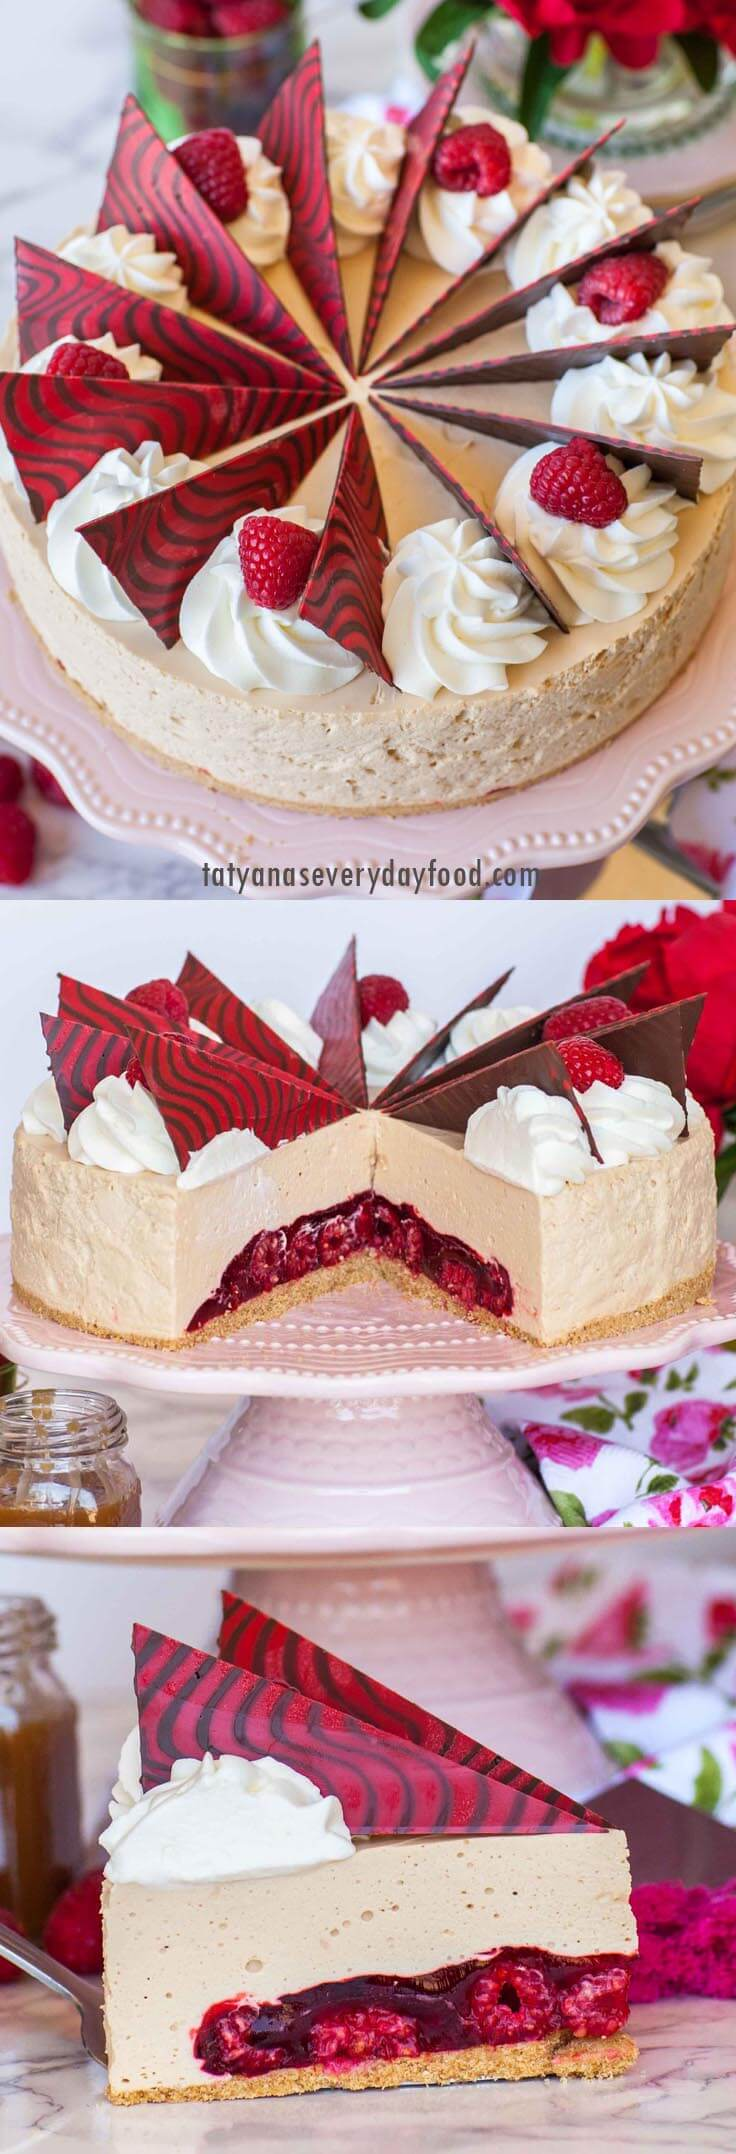 No-Bake Caramel Raspberry Mousse Cake video recipe